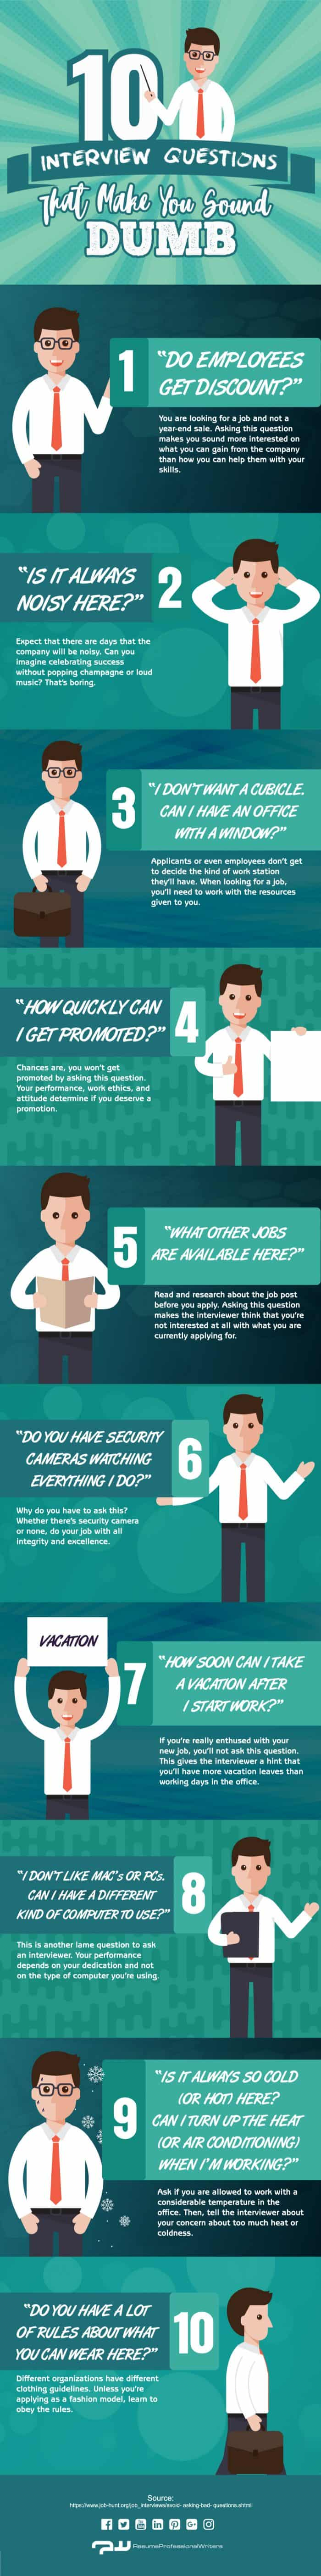 interview questions to avoid that make you sound stupi